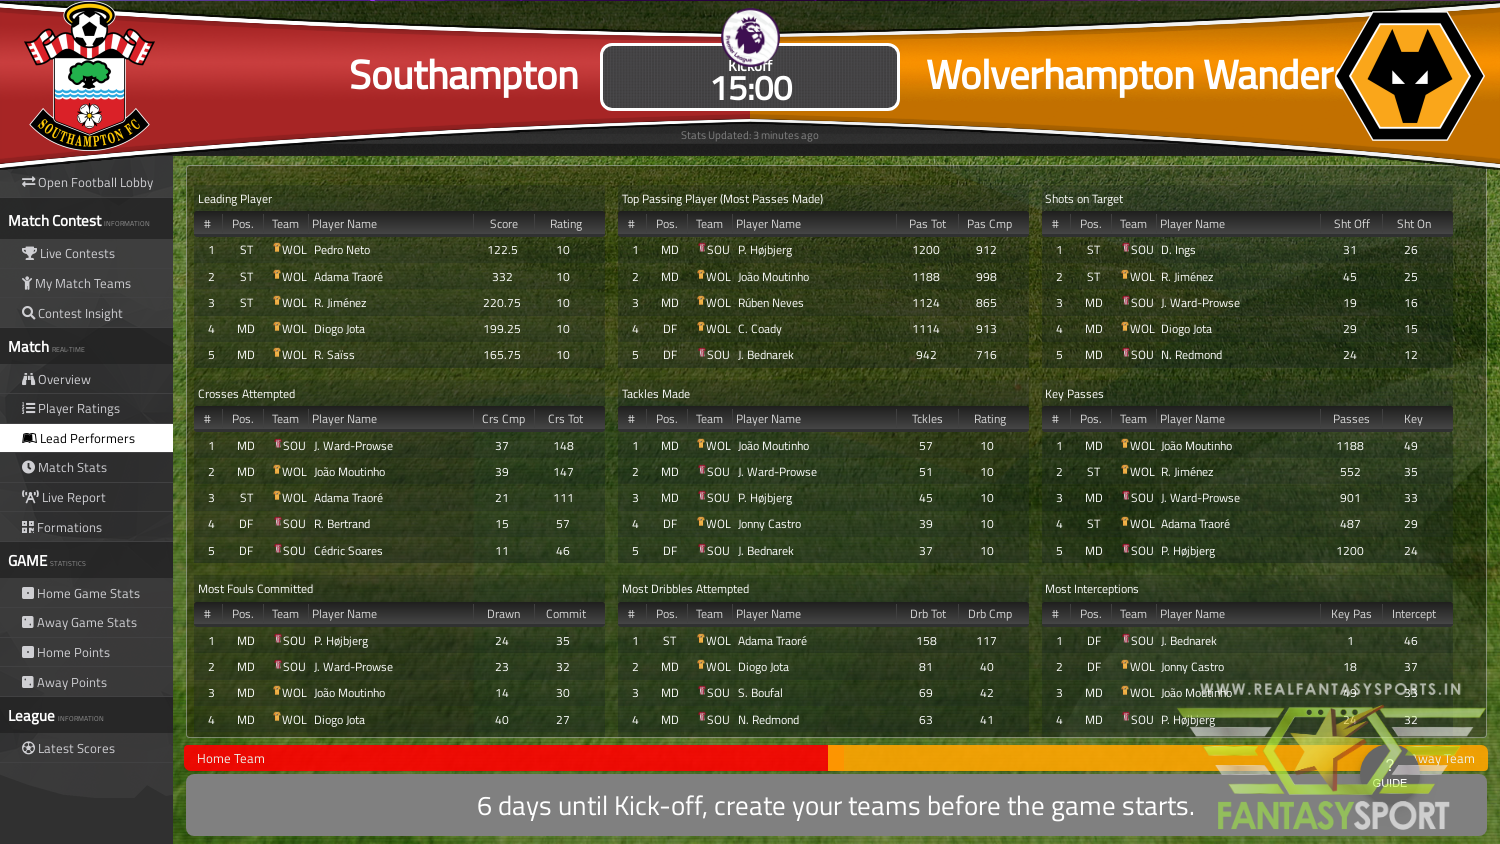 Dream Team Pick For Southampton Vs Wolverhampton Wanderers